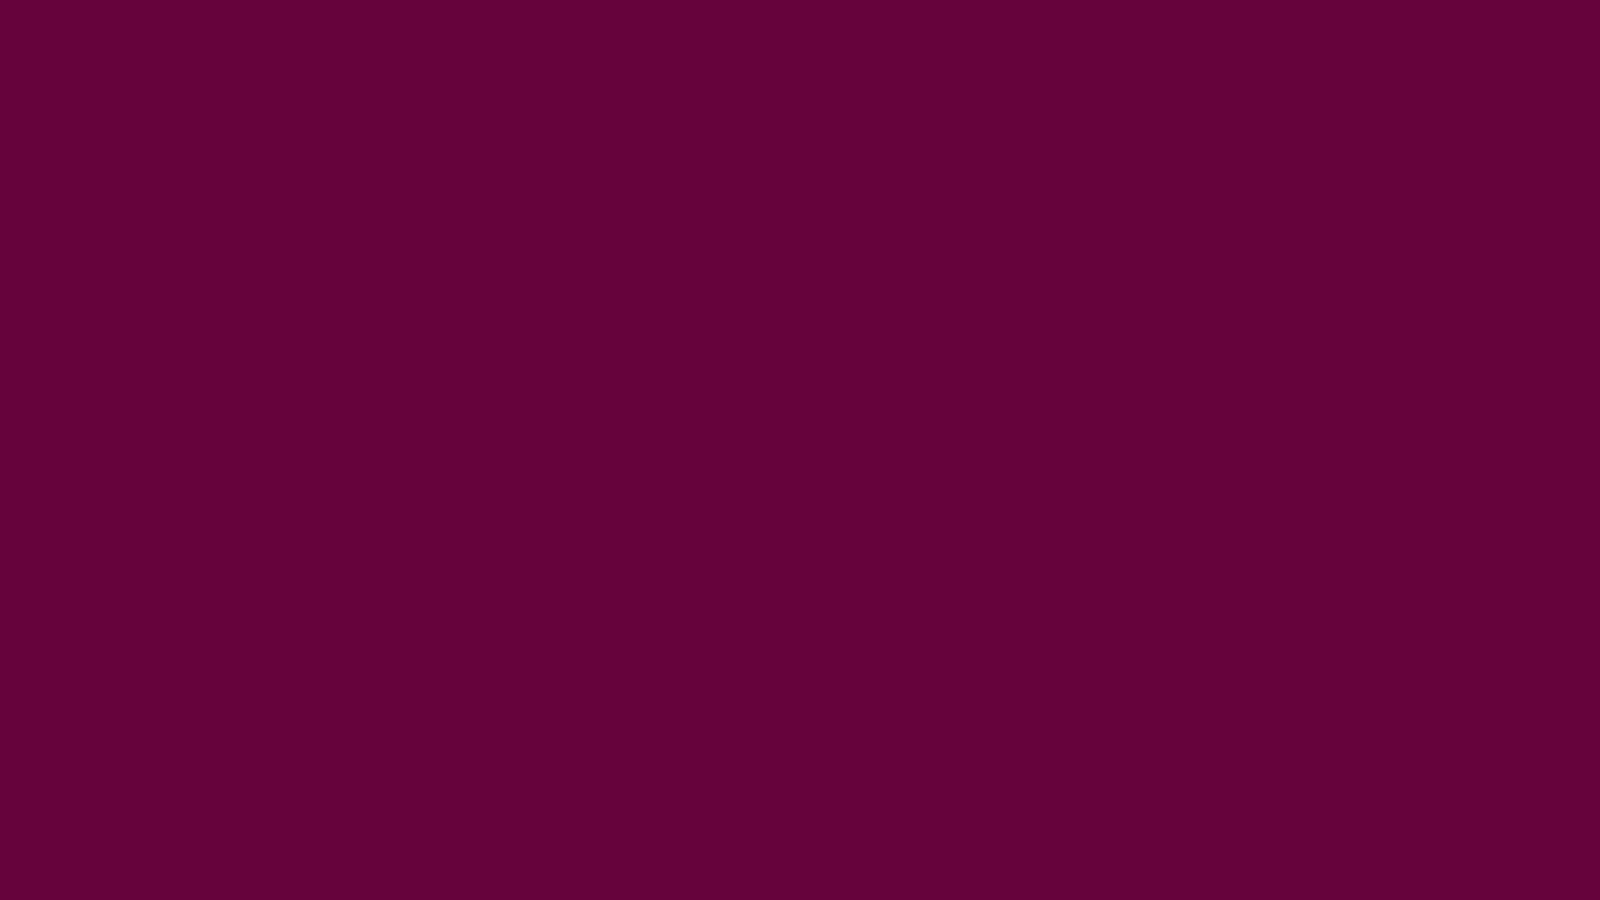 1600x900 Imperial Purple Solid Color Background